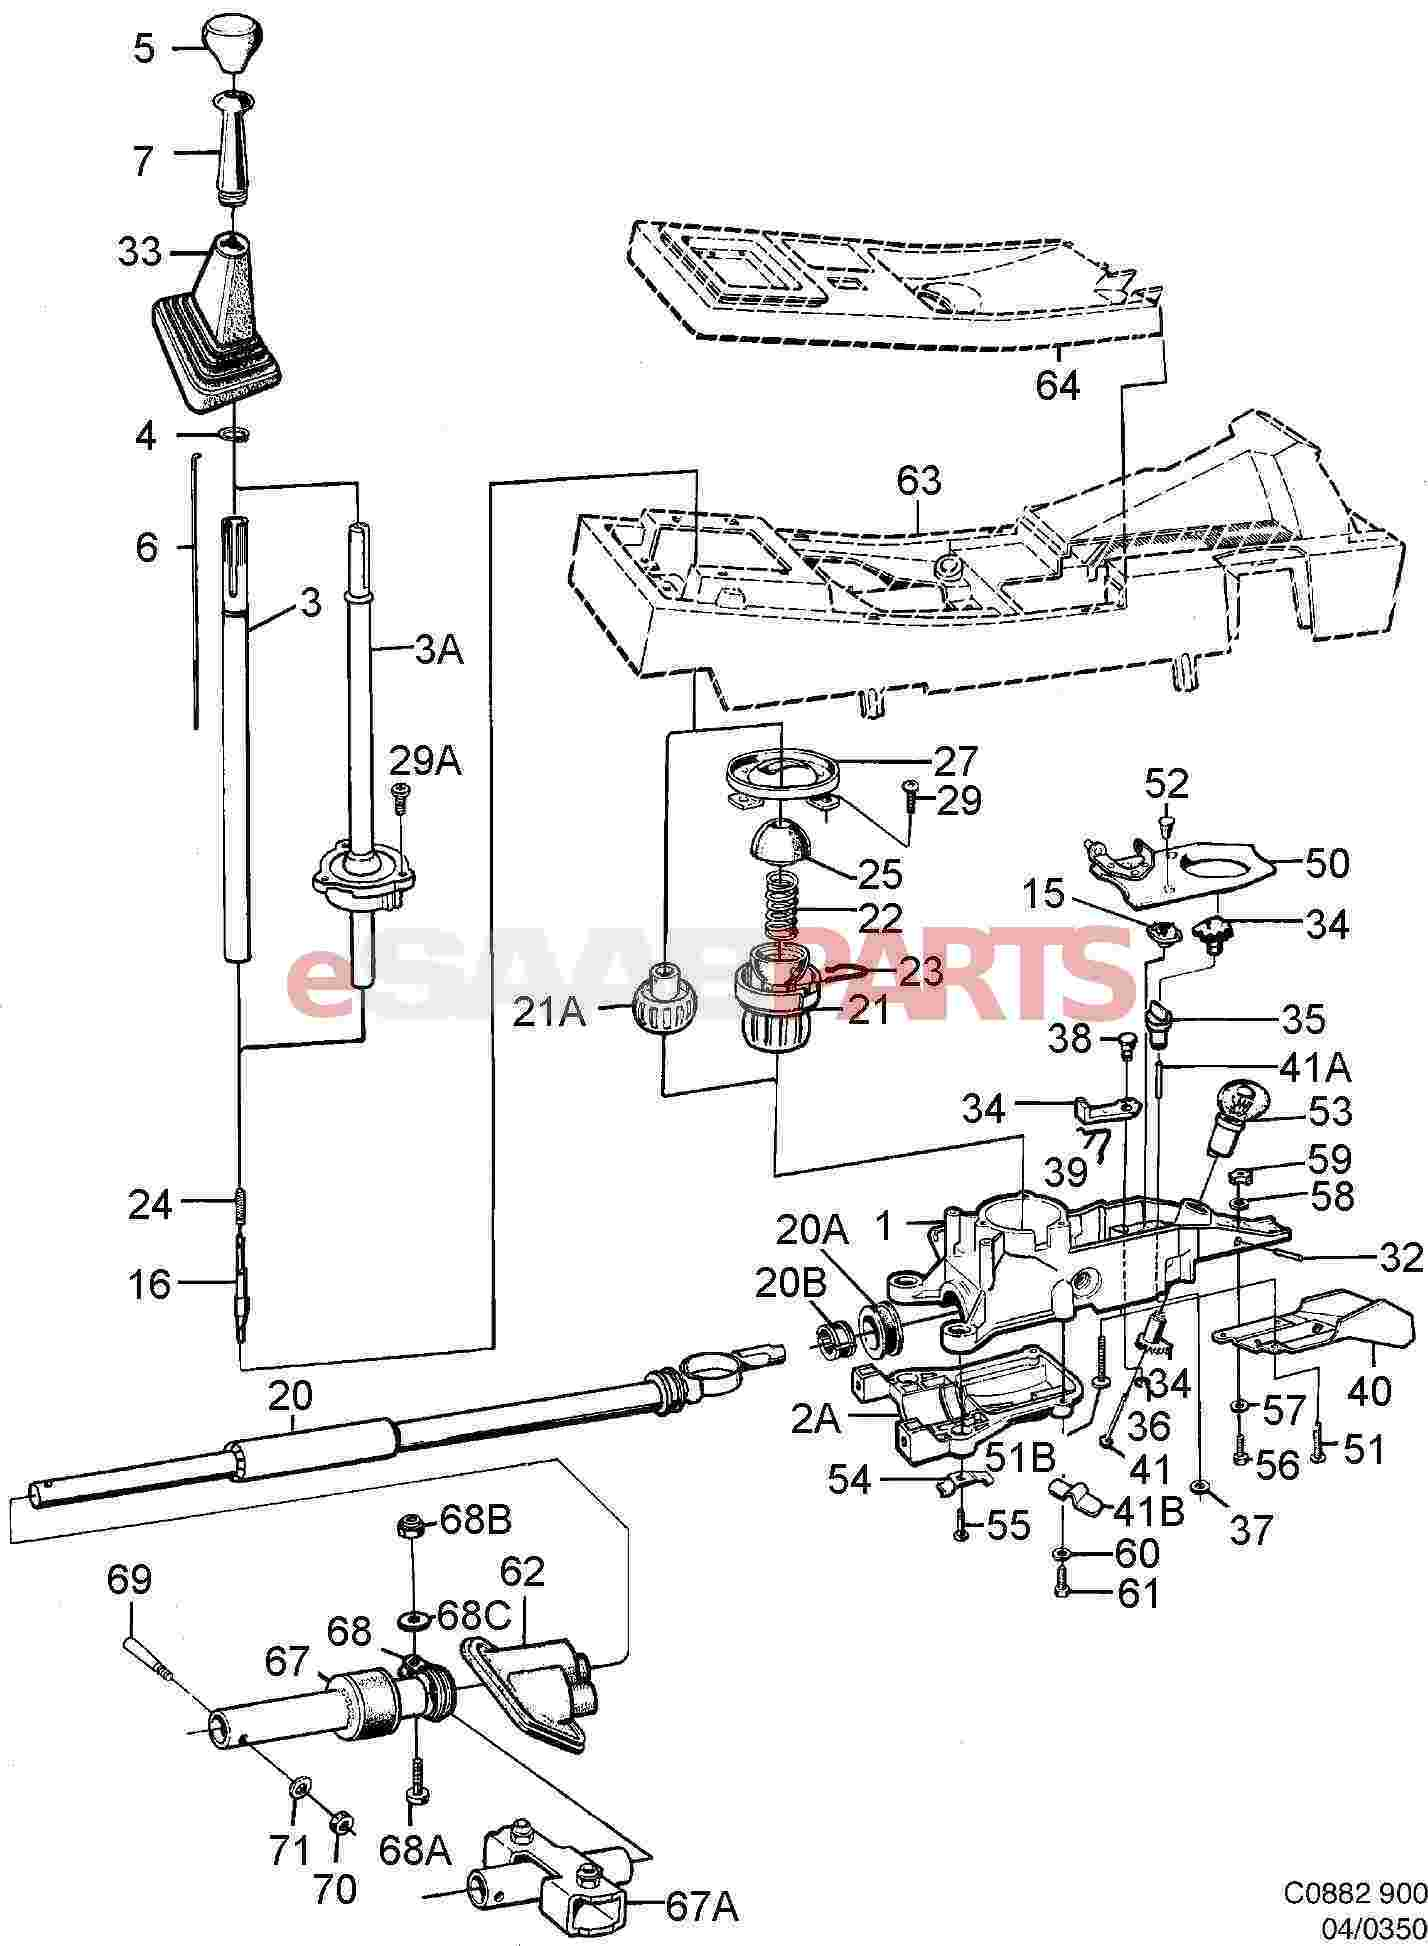 [DIAGRAM] Saab 900 Transmission Diagram FULL Version HD